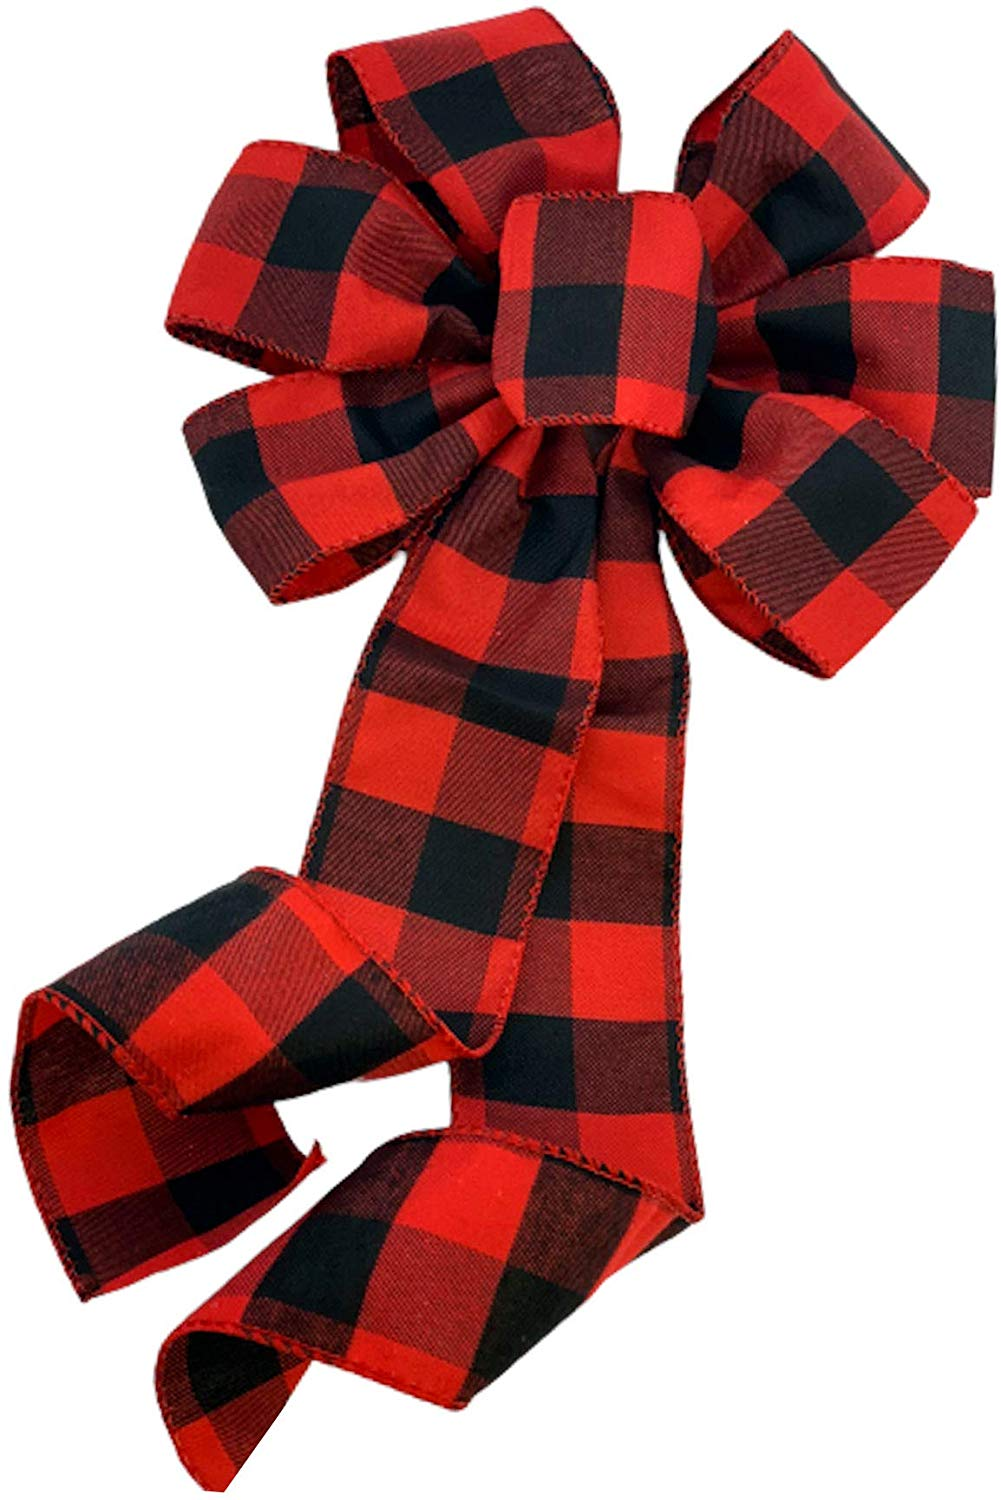 Buffalo Plaid Christmas Wreath Bow 10 Wide 18 Long Pre Tied Bow Red Black Checkers Valentine S Day Door Decoration Swag Wreath Garland Boxing Day Fall Winter Walmart Com Walmart Com